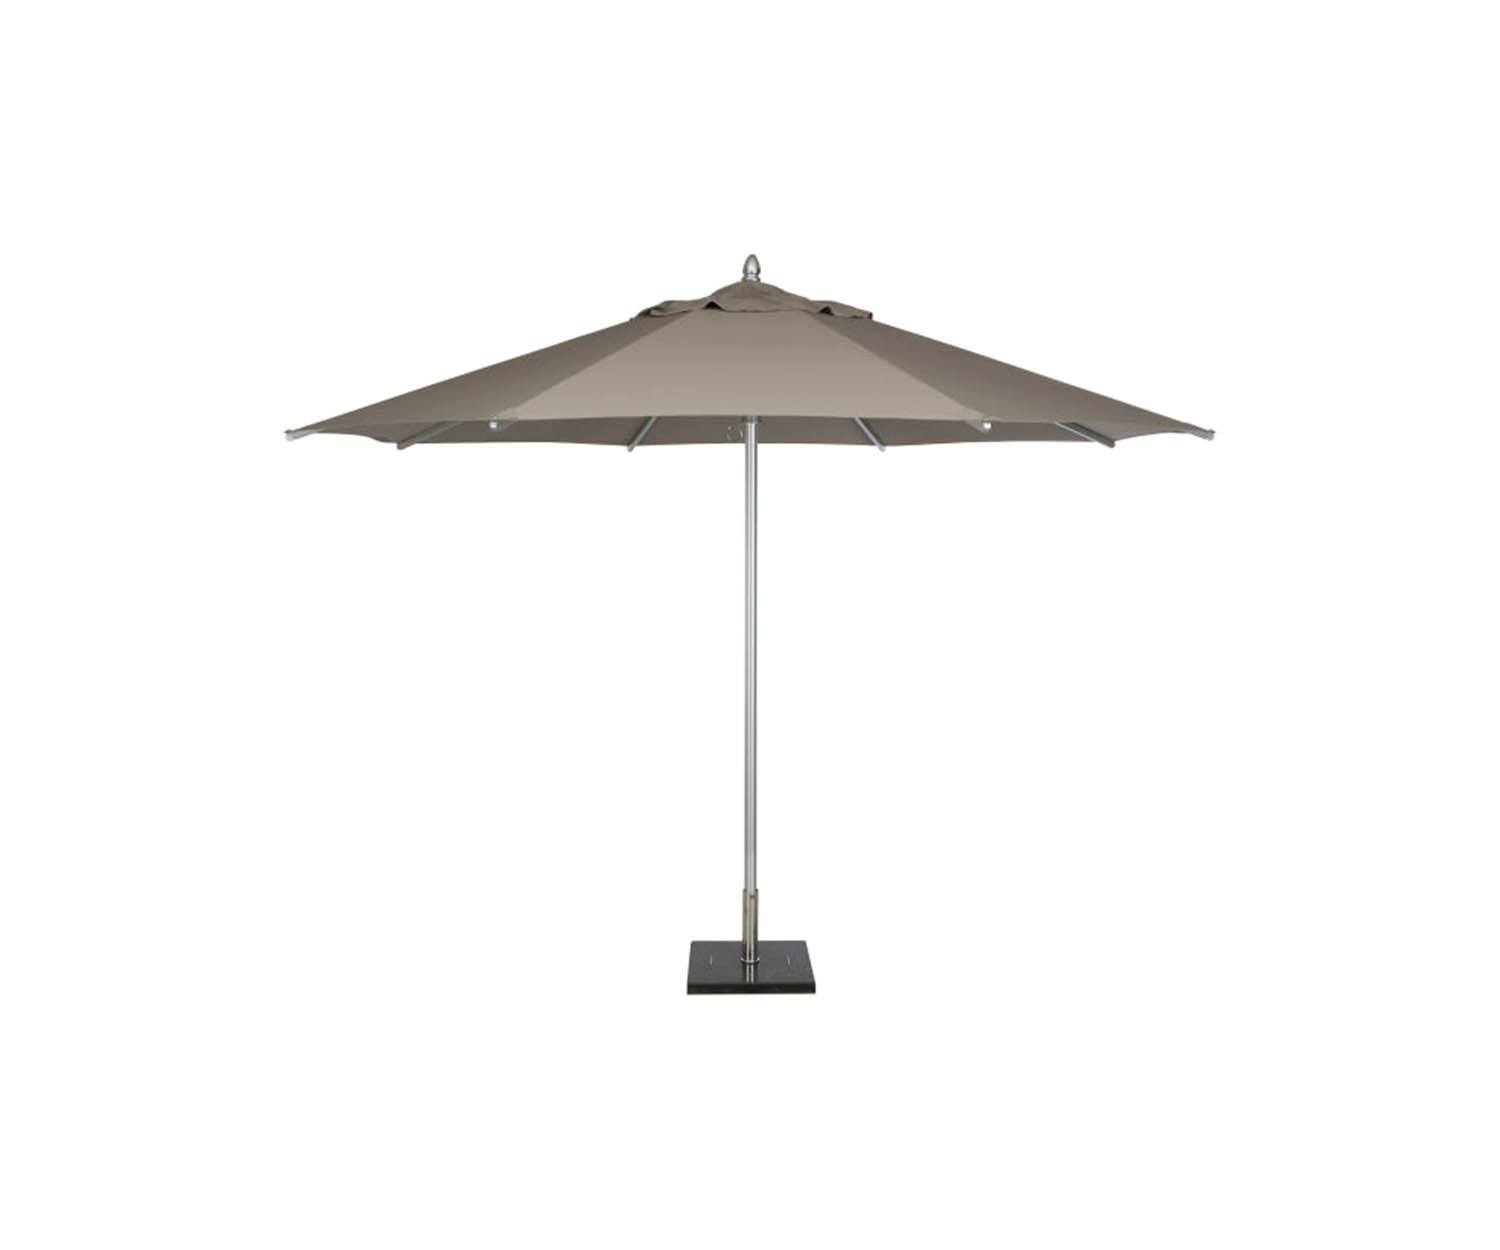 Central Pole Umbrella Manutti